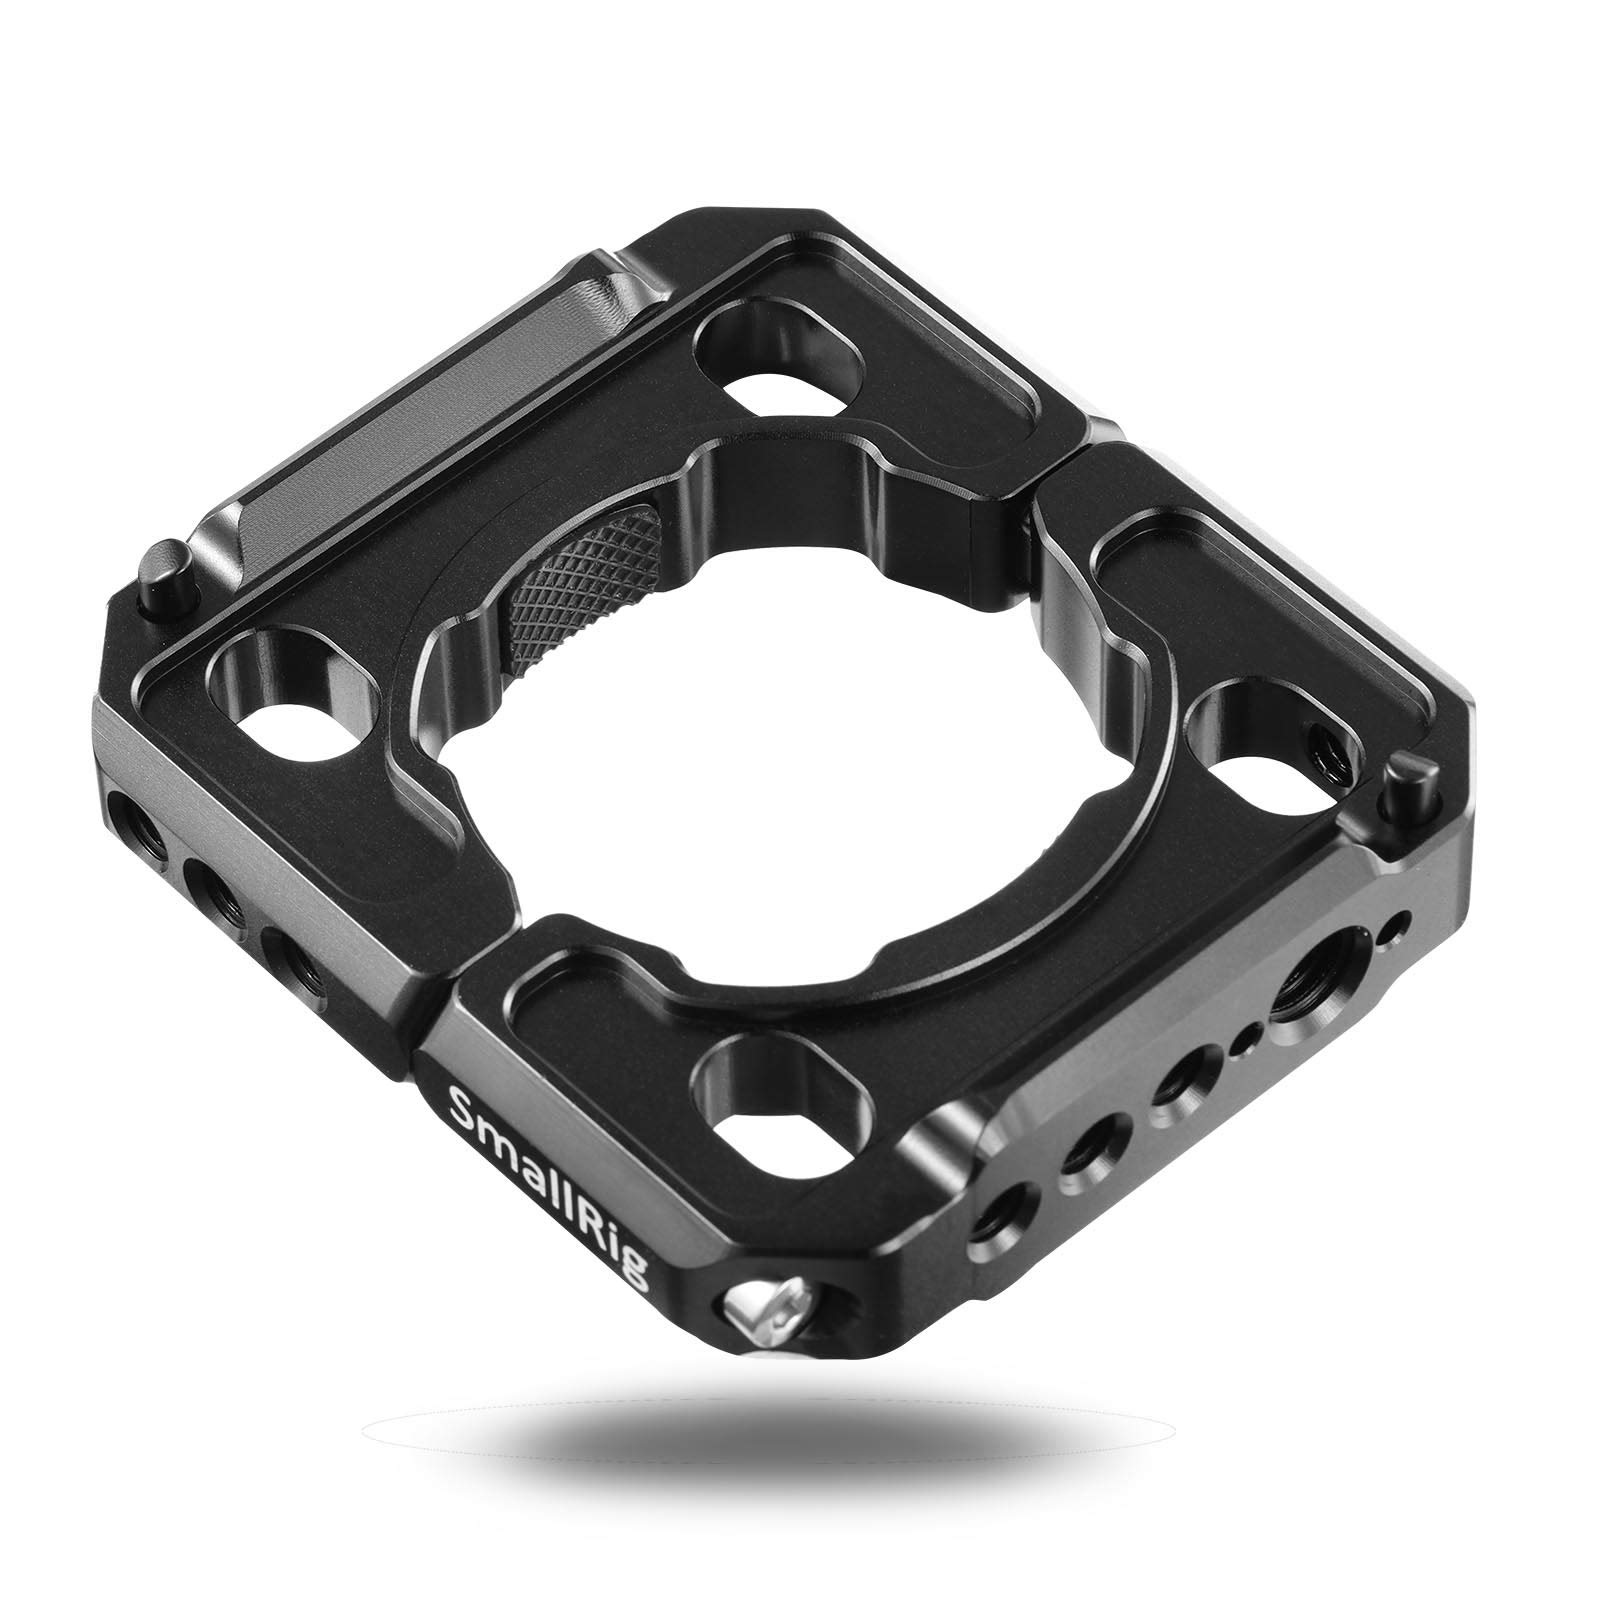 Smallrig 2221 Rod Clamp Ring Extension Mounting Ring Comp...